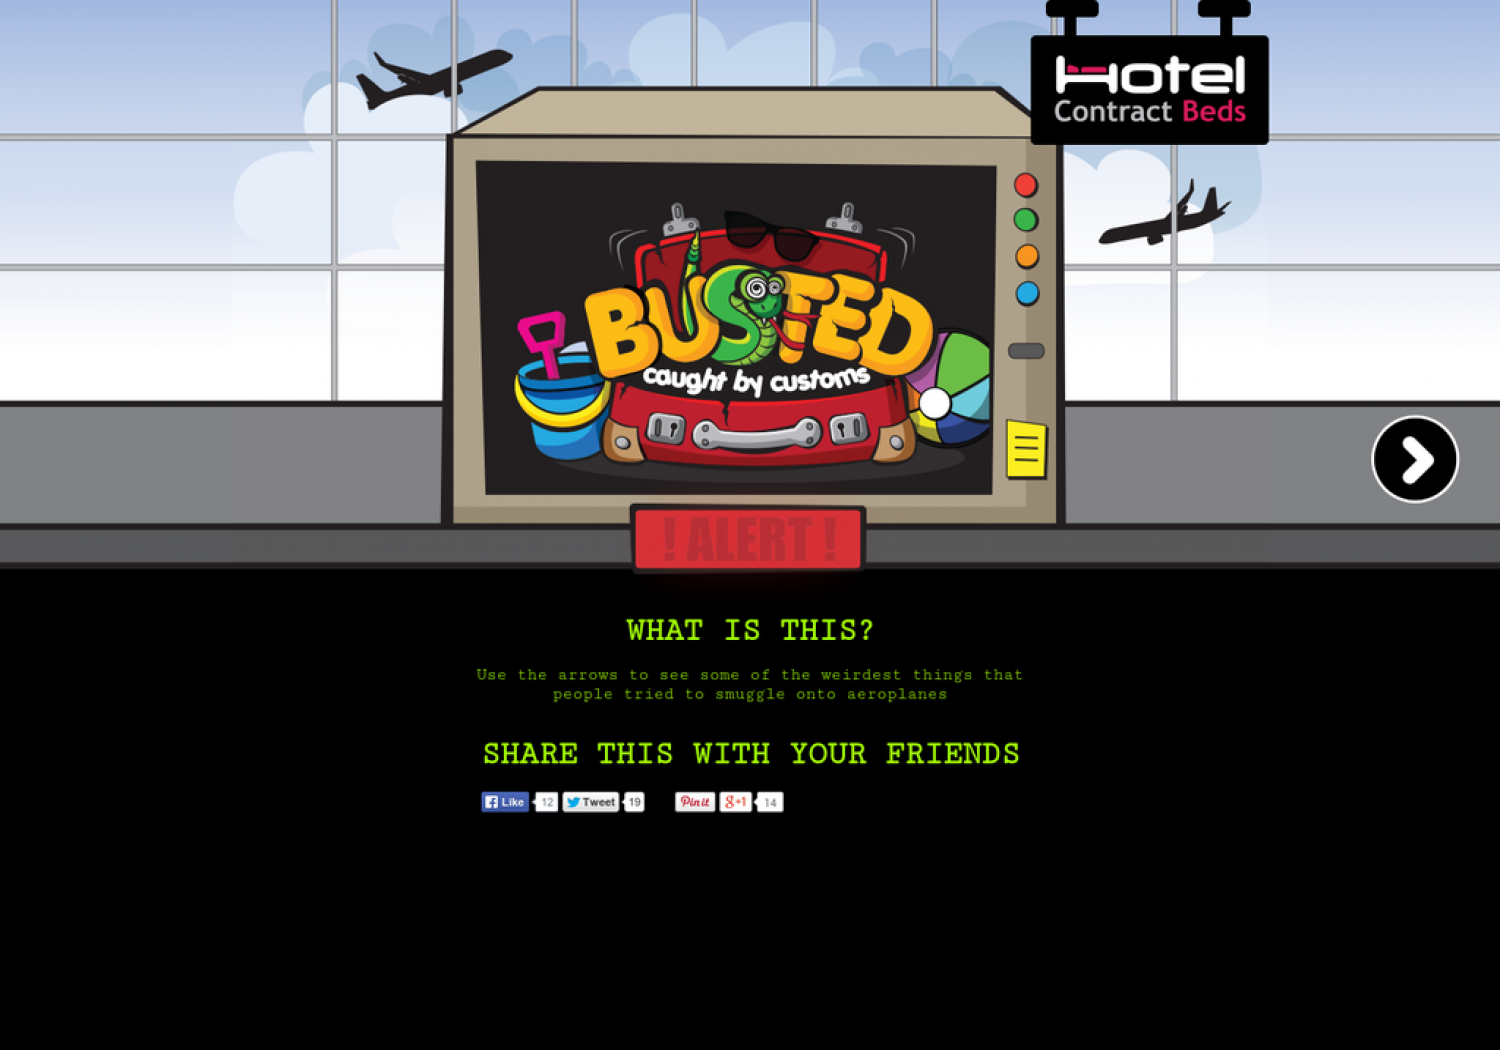 Busted! Caught at Customs Infographic